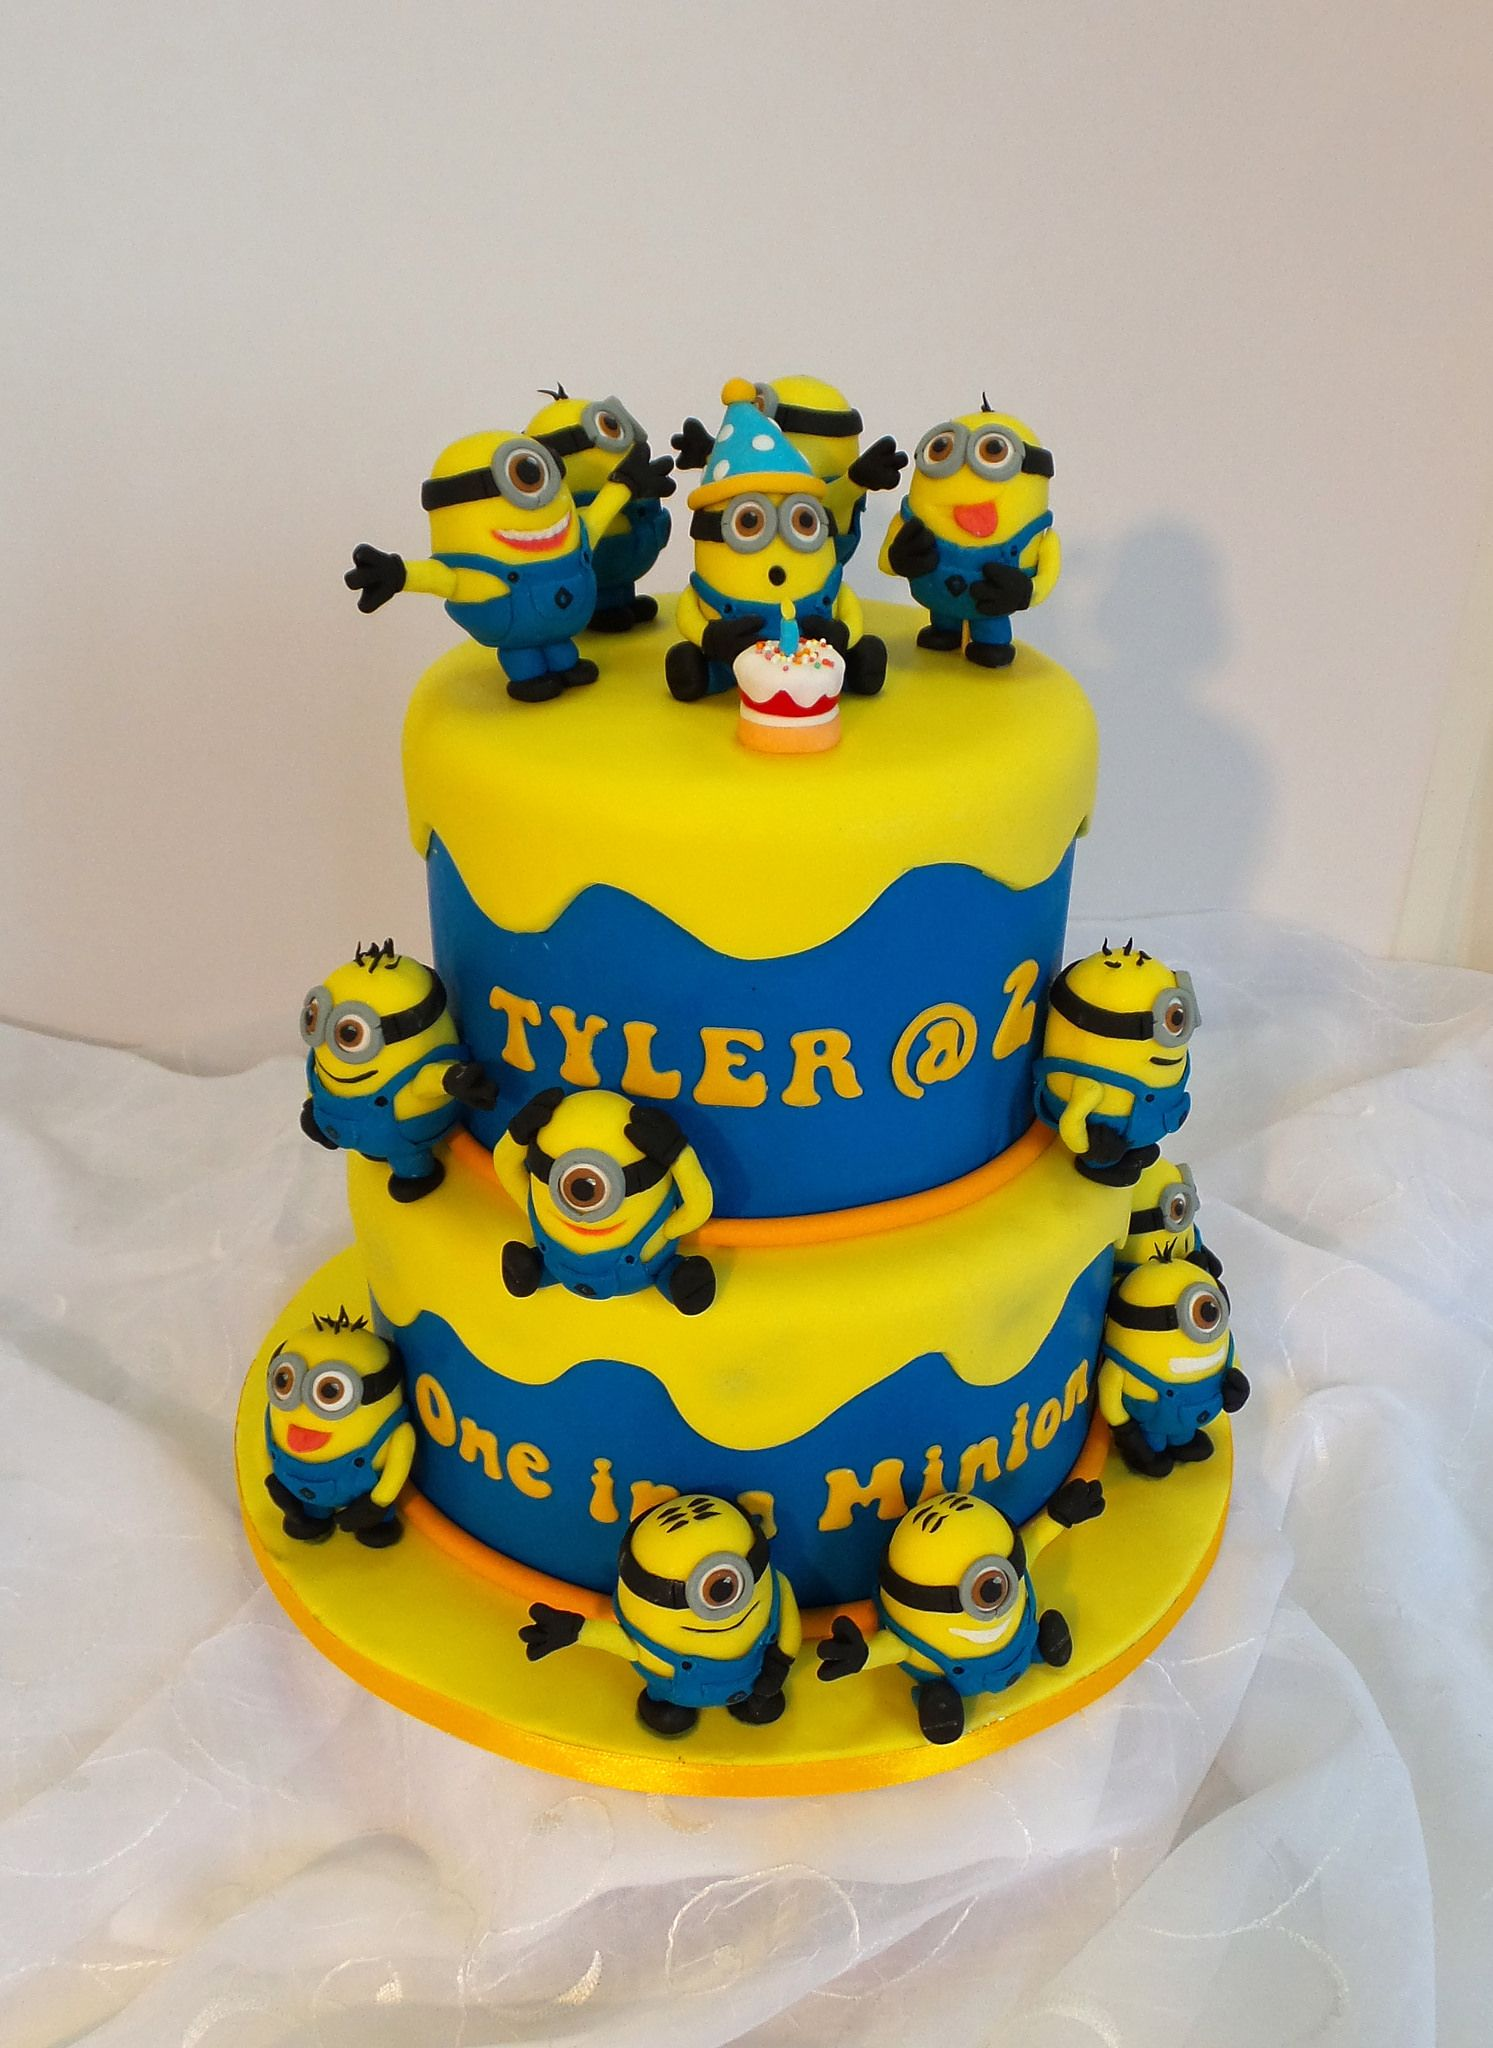 Fabulous Two Tier Minion Themed Birthday Cake With Images Minion Cake Funny Birthday Cards Online Inifodamsfinfo